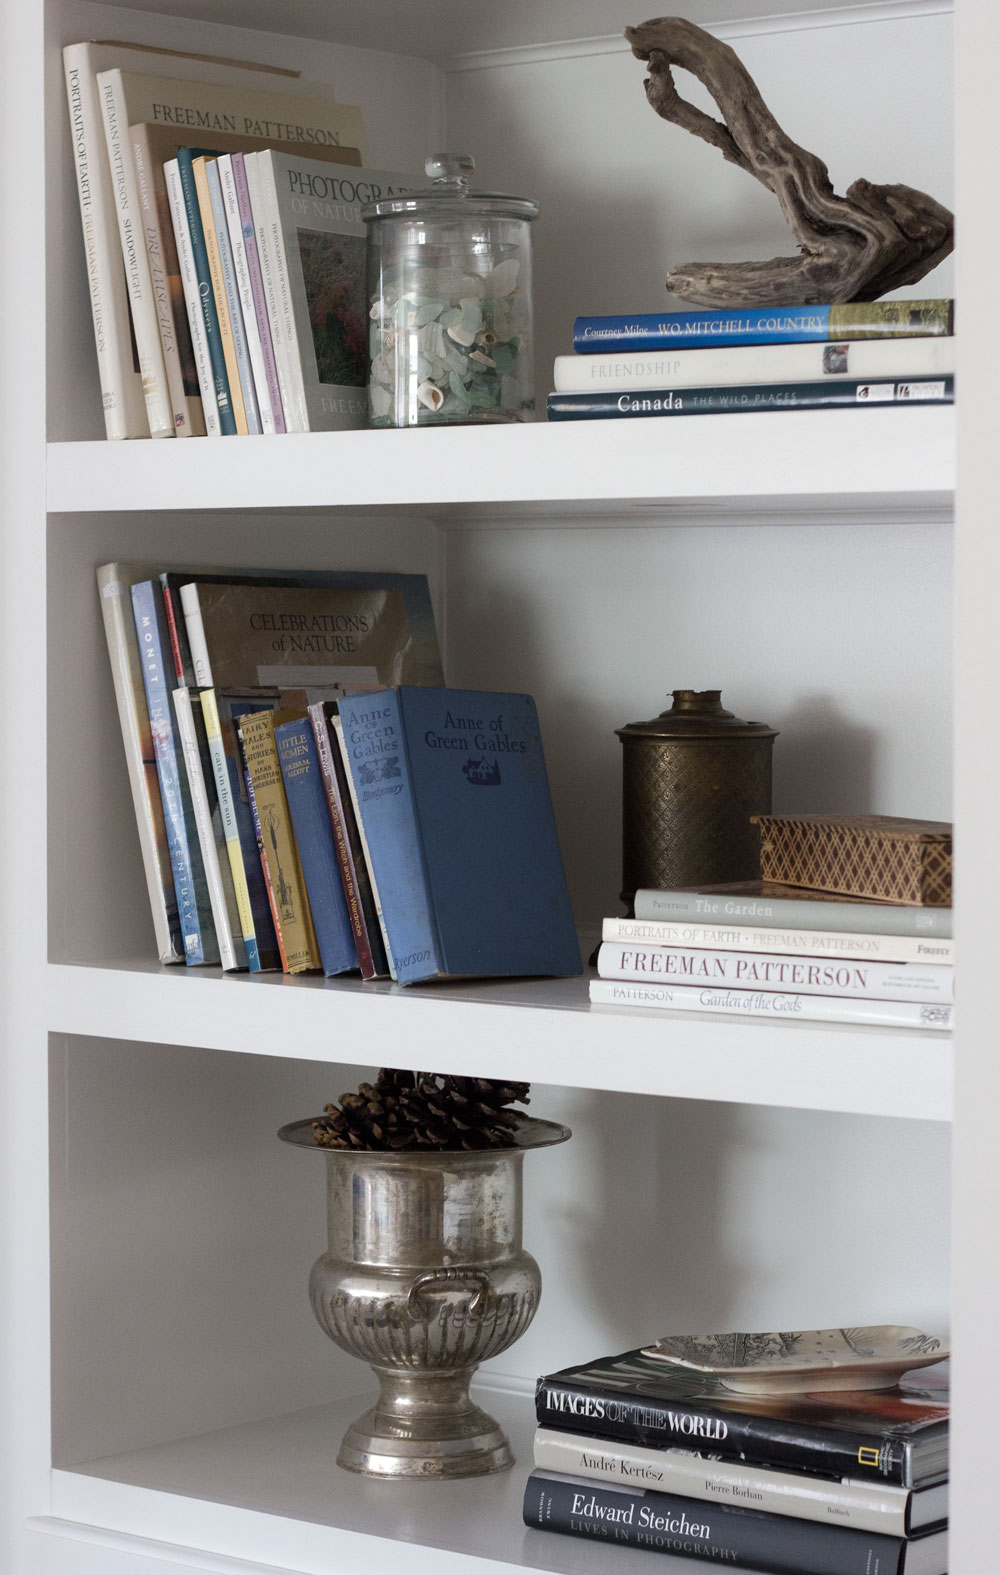 essentialist bookshelf styling - adding meaning and joy without clutter